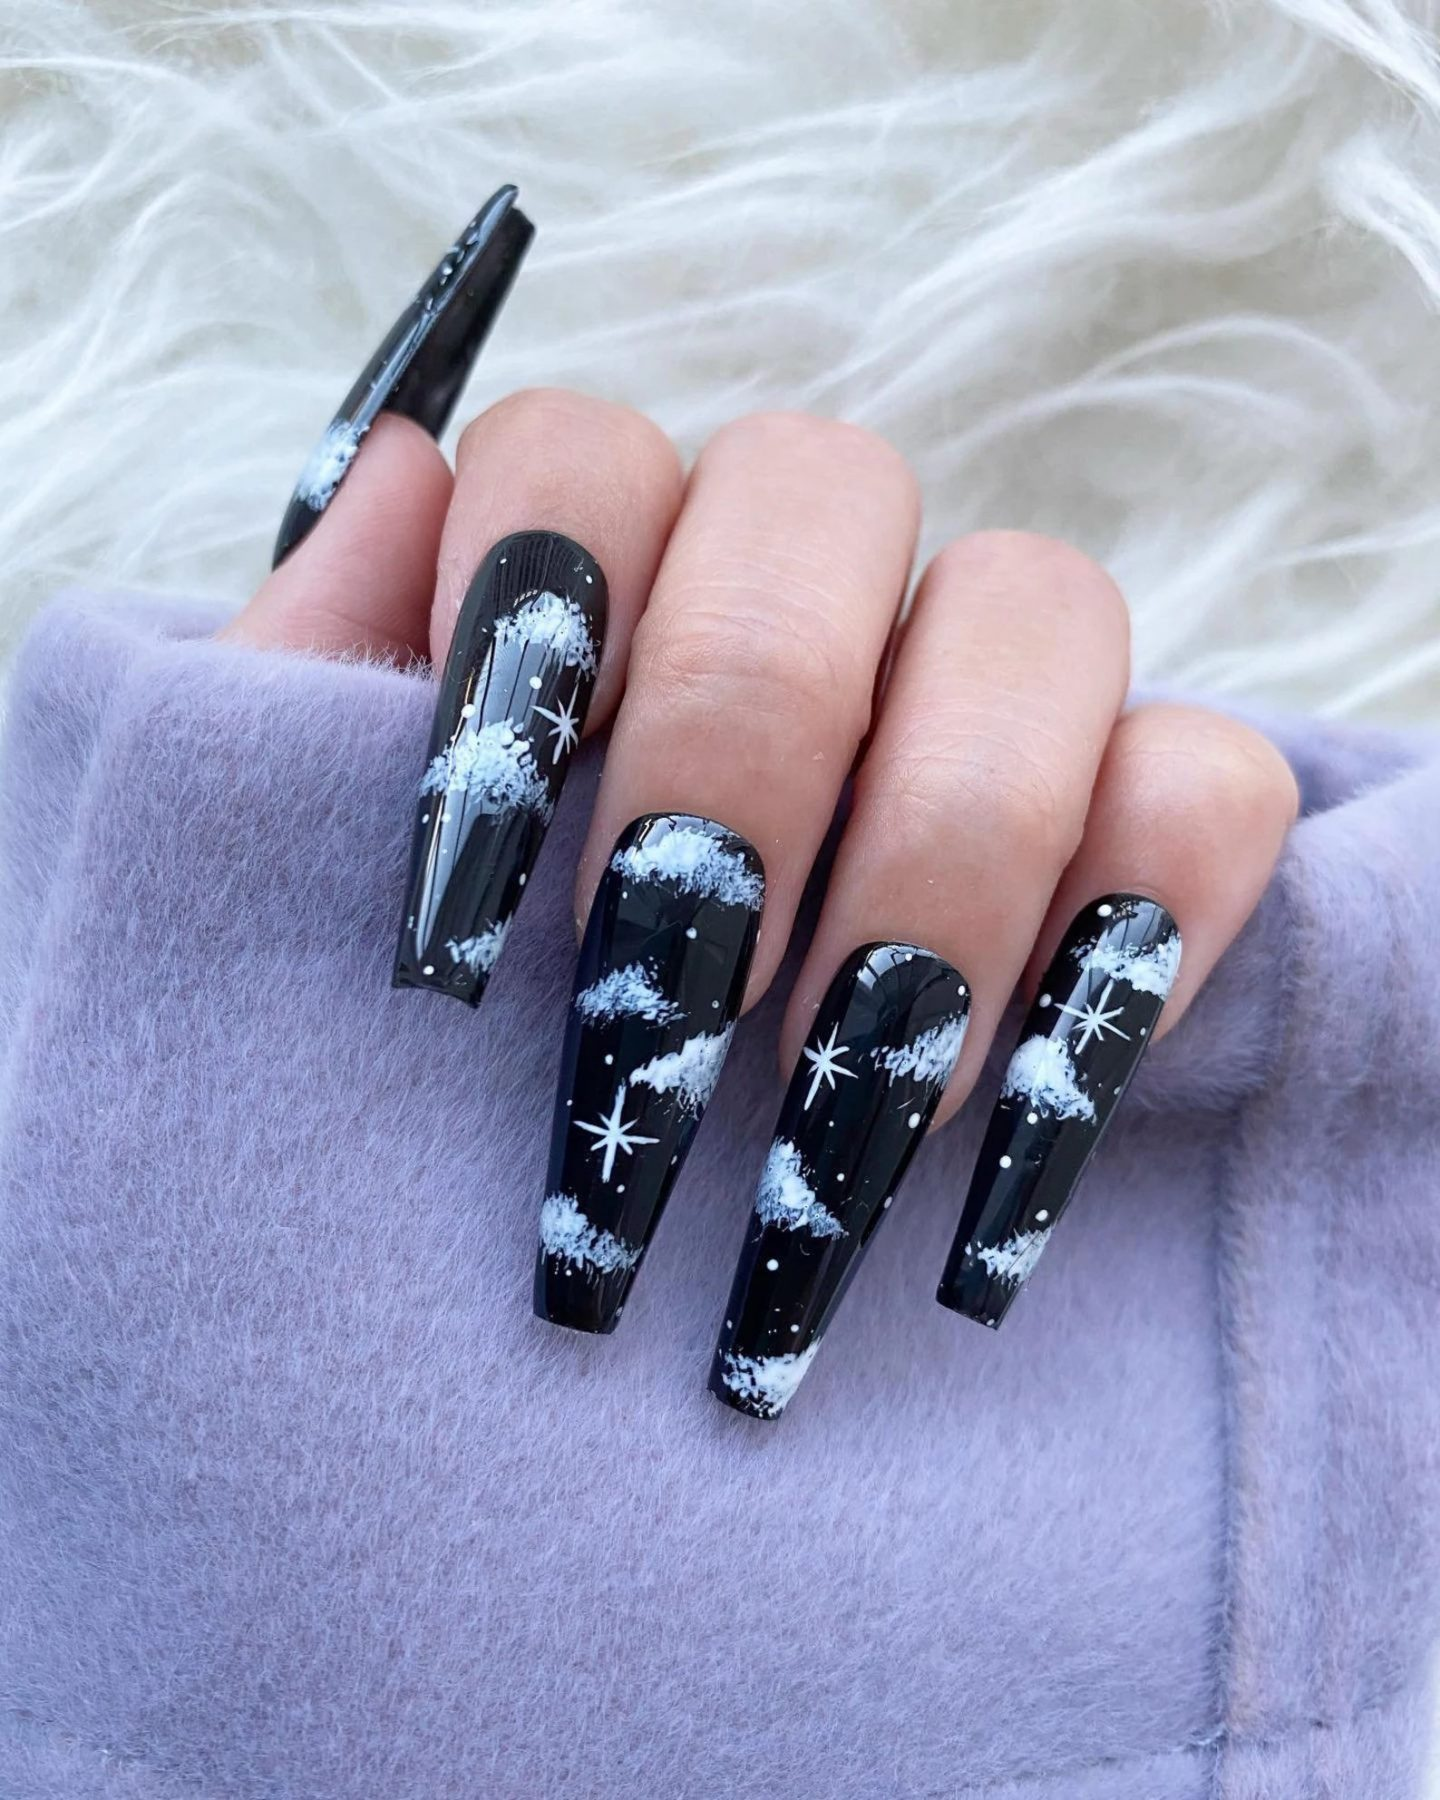 Long black coffin nails with cloud nail art